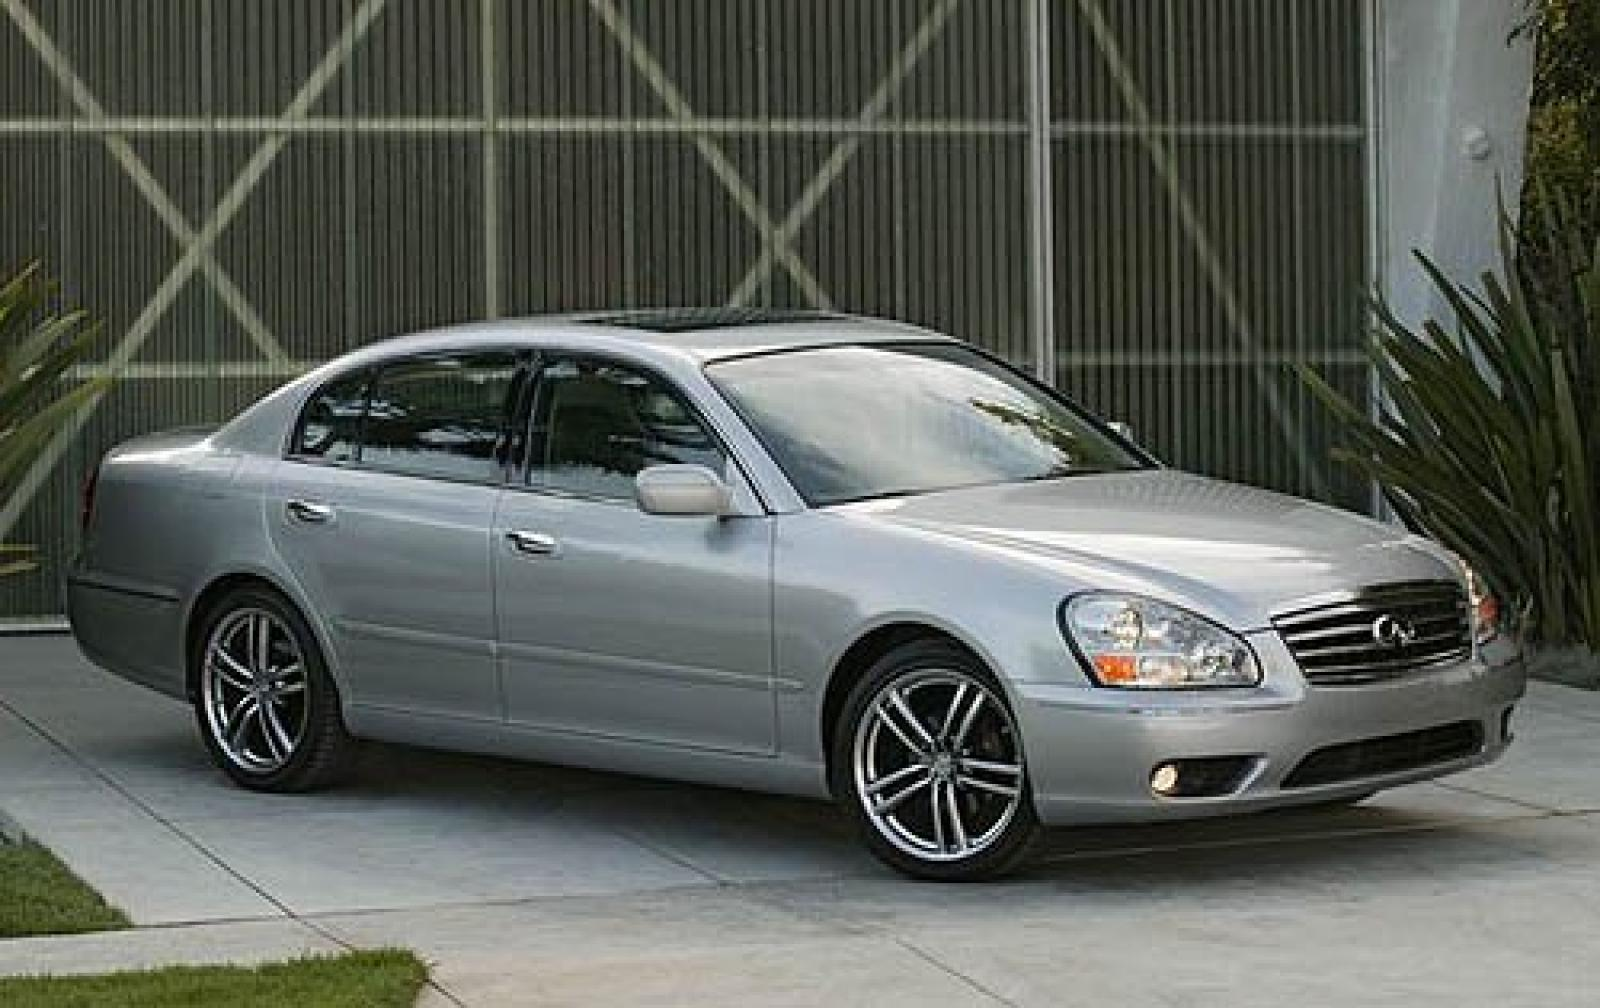 2006 infiniti q45 information and photos zombiedrive infiniti gallery vanachro Choice Image